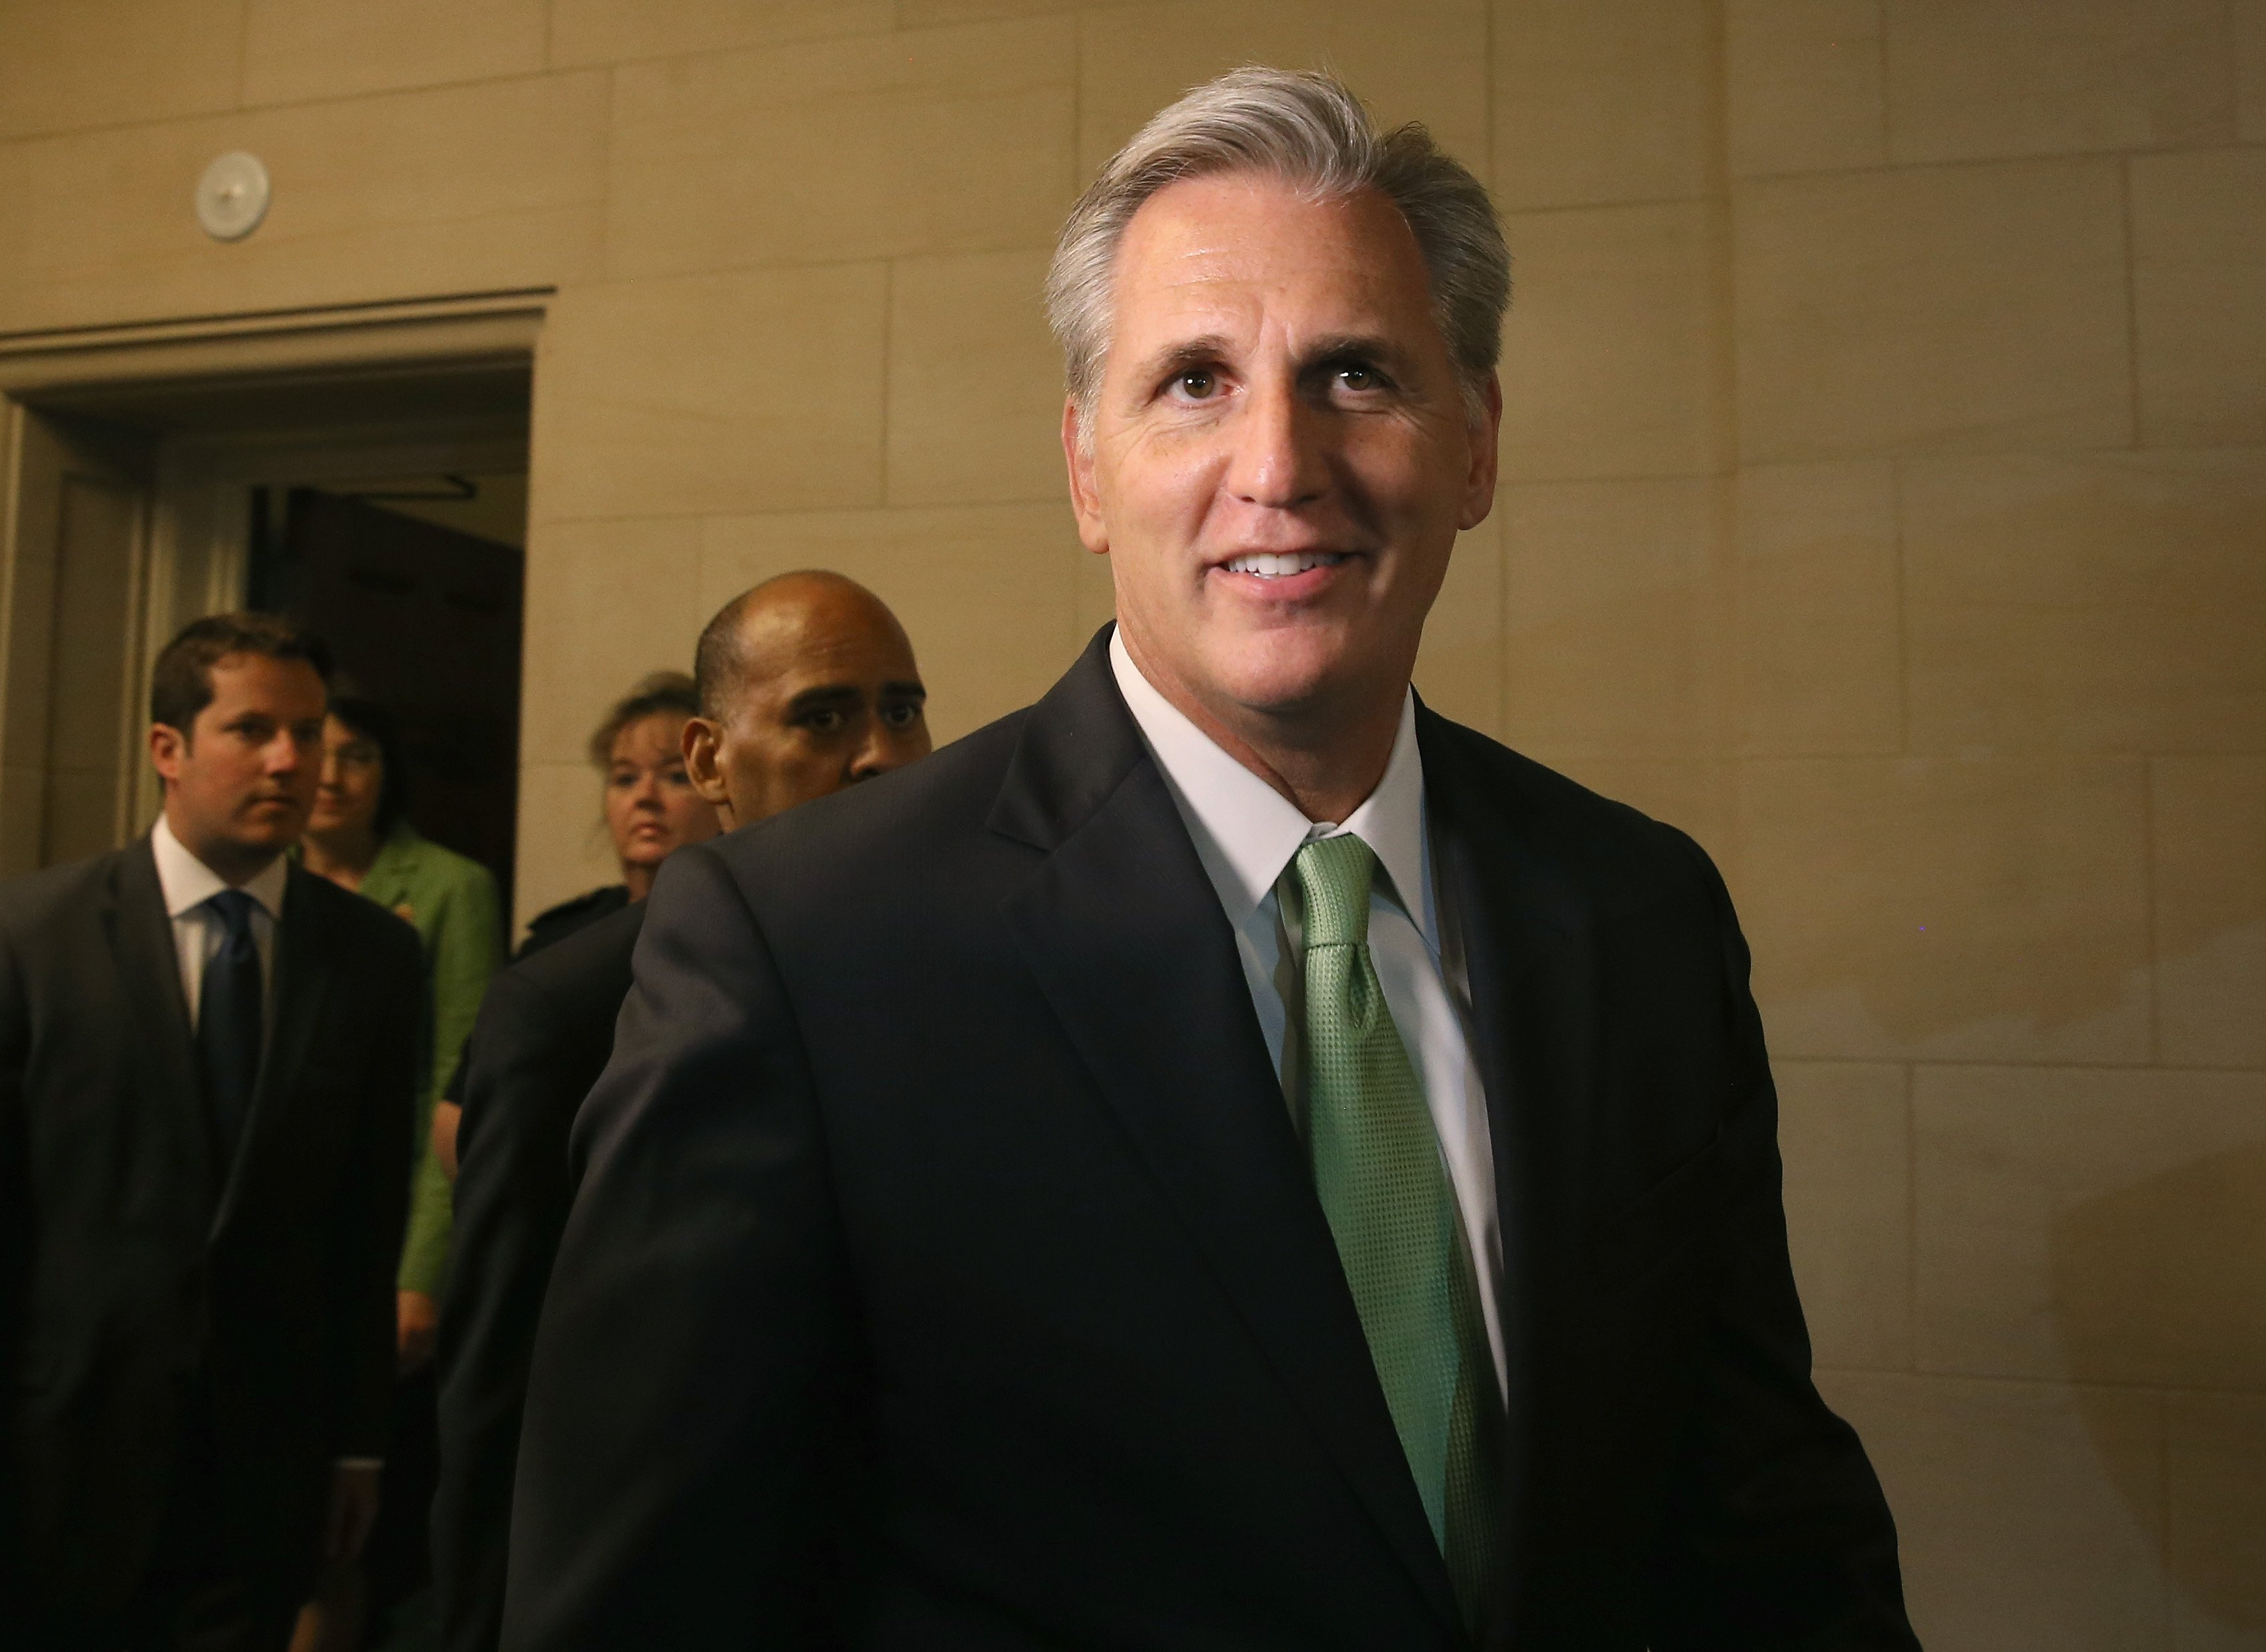 WASHINGTON, DC - JUNE 19: Newly elected House Majority Leader Rep Kevin Mccarthy (R-CA) walks out of a House Republican Conference meeting June 19, 2014 on Capitol Hill in Washington.